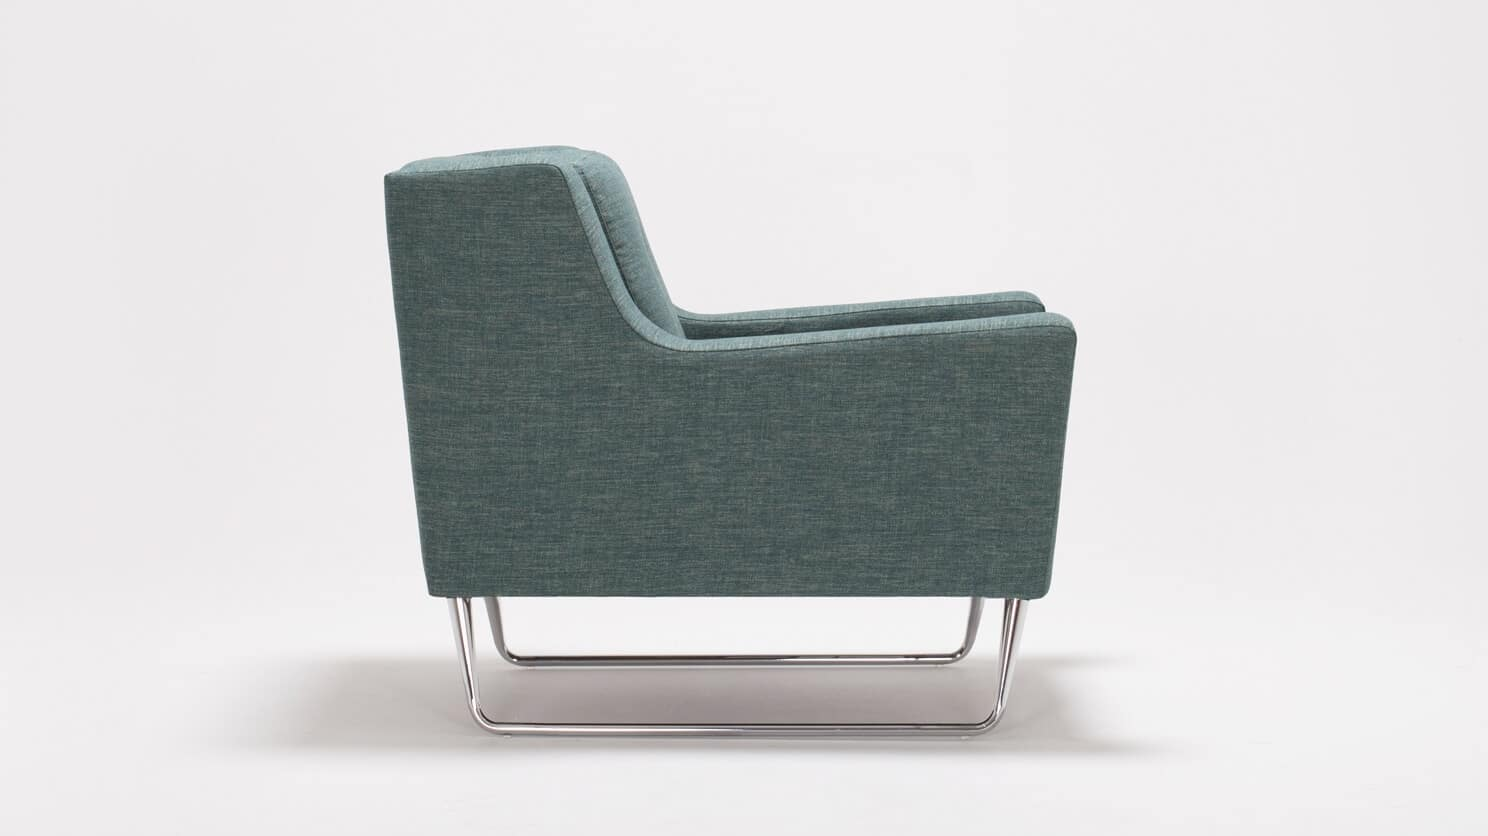 30104 02 3 chairs elise chair key largo teal side